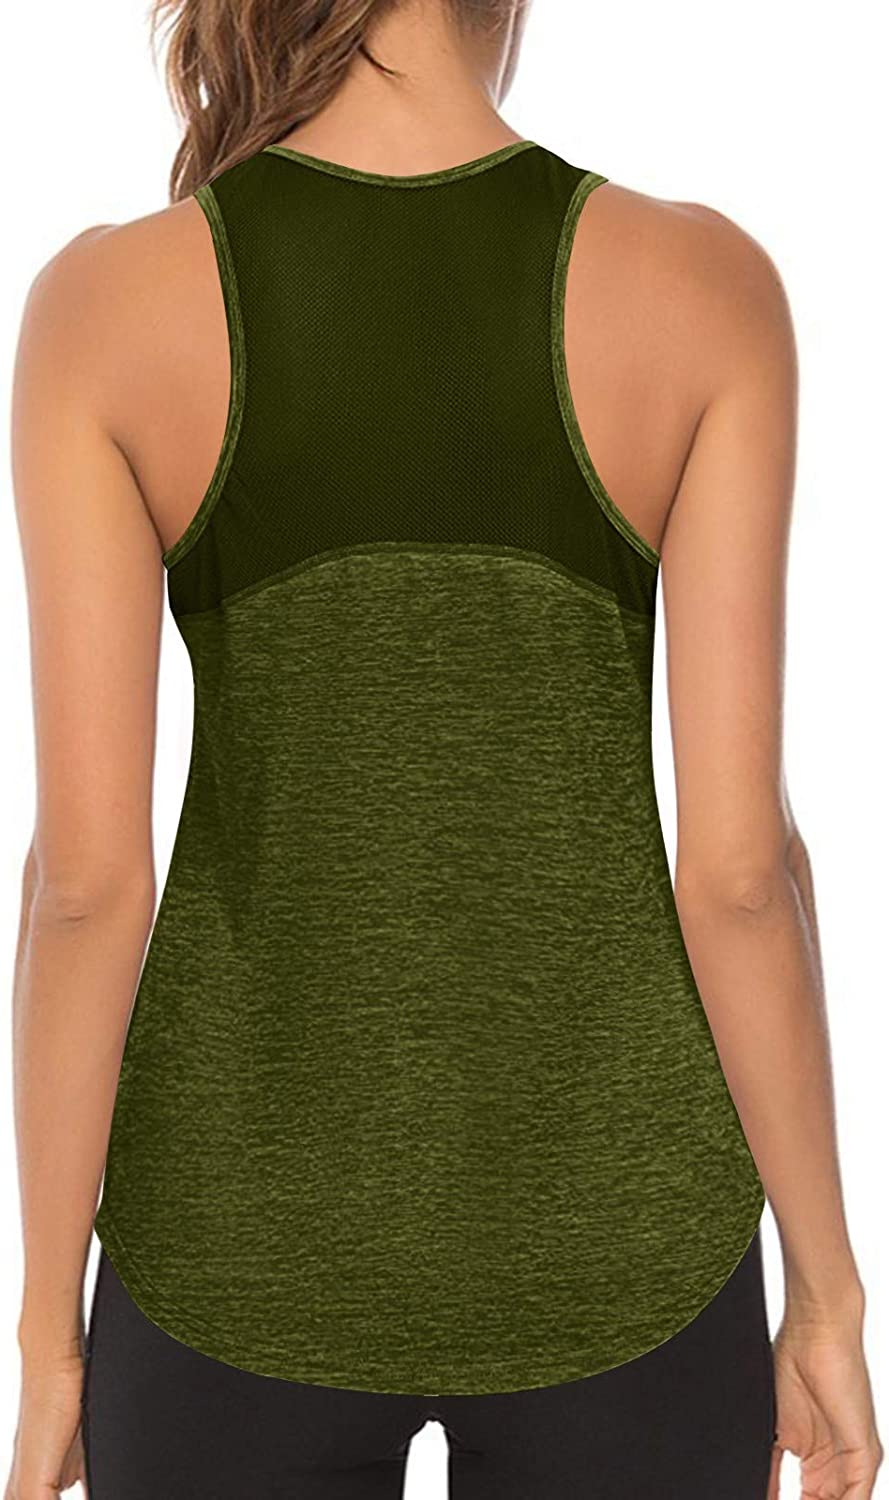 AODONG Workout Tank Tops for Women,Womens Summer Mesh Athletic Sports Yoga Casual Loose Shirts Sleeveless Blouses Tops